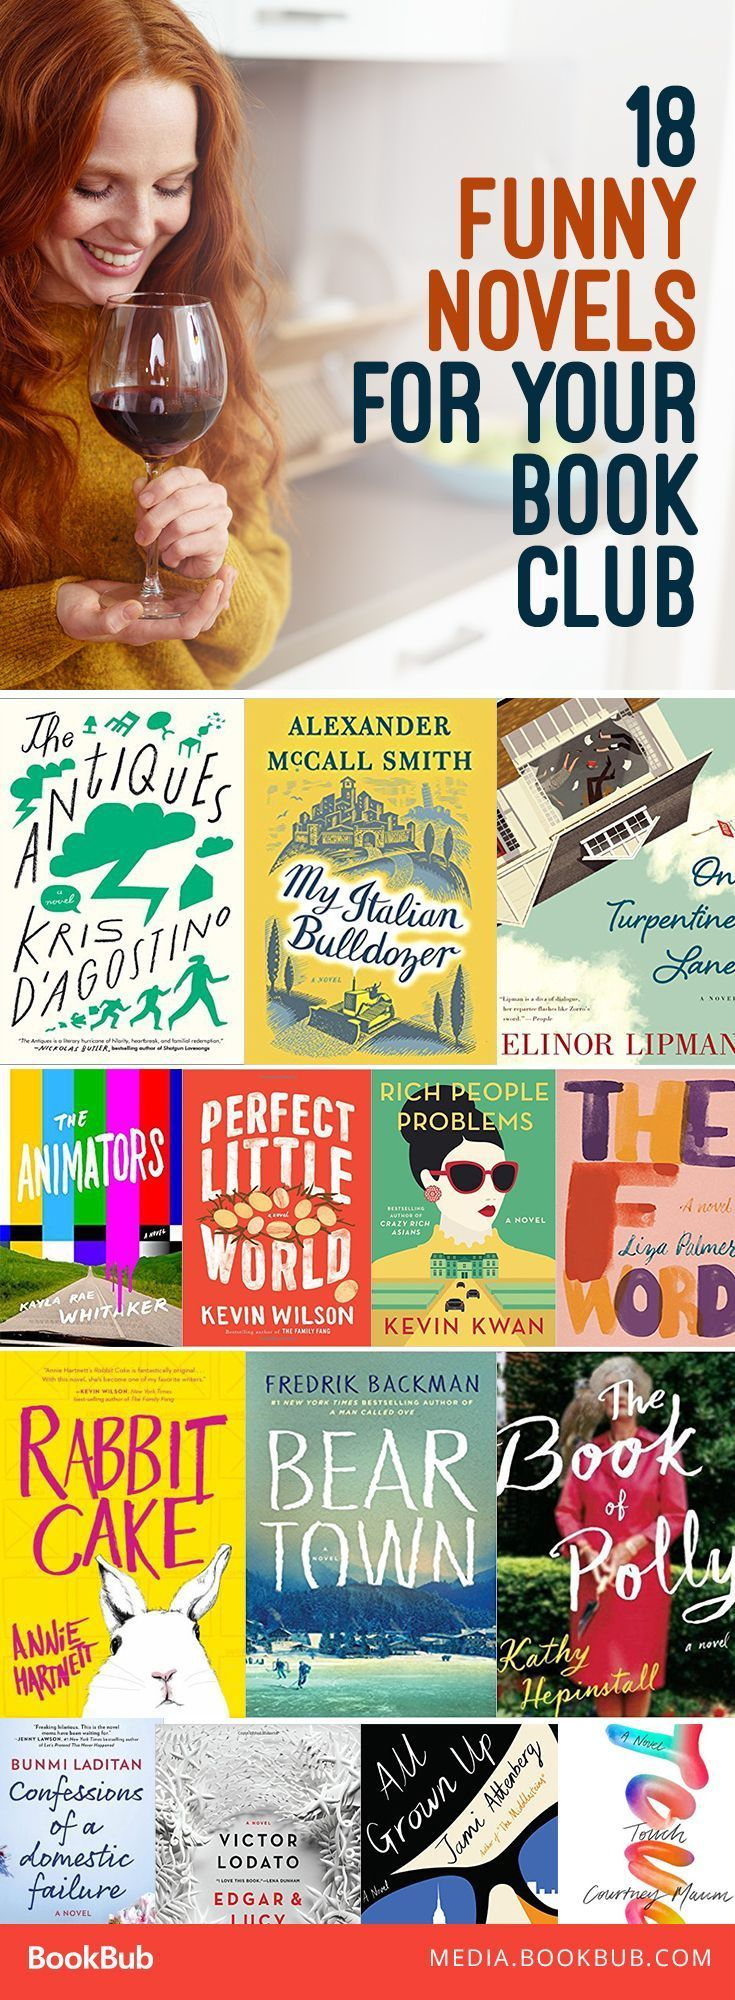 17 Laugh Out Loud Reads For Your Book Club Book Club Books Books Uplifting Books